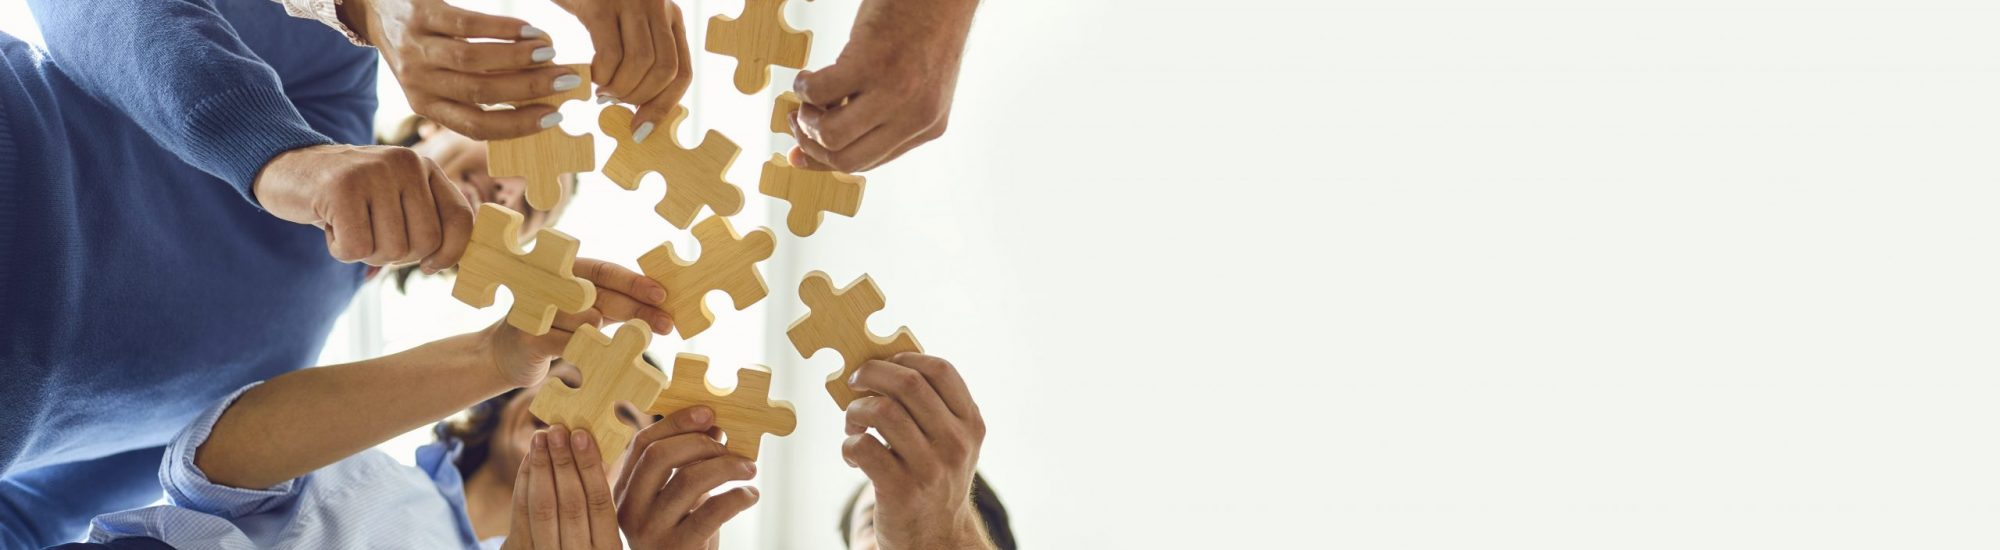 Concept of finding solution. From below of company workers assembling pieces of jigsaw puzzle in work meeting. Banner with happy office employees playing game during team building activity